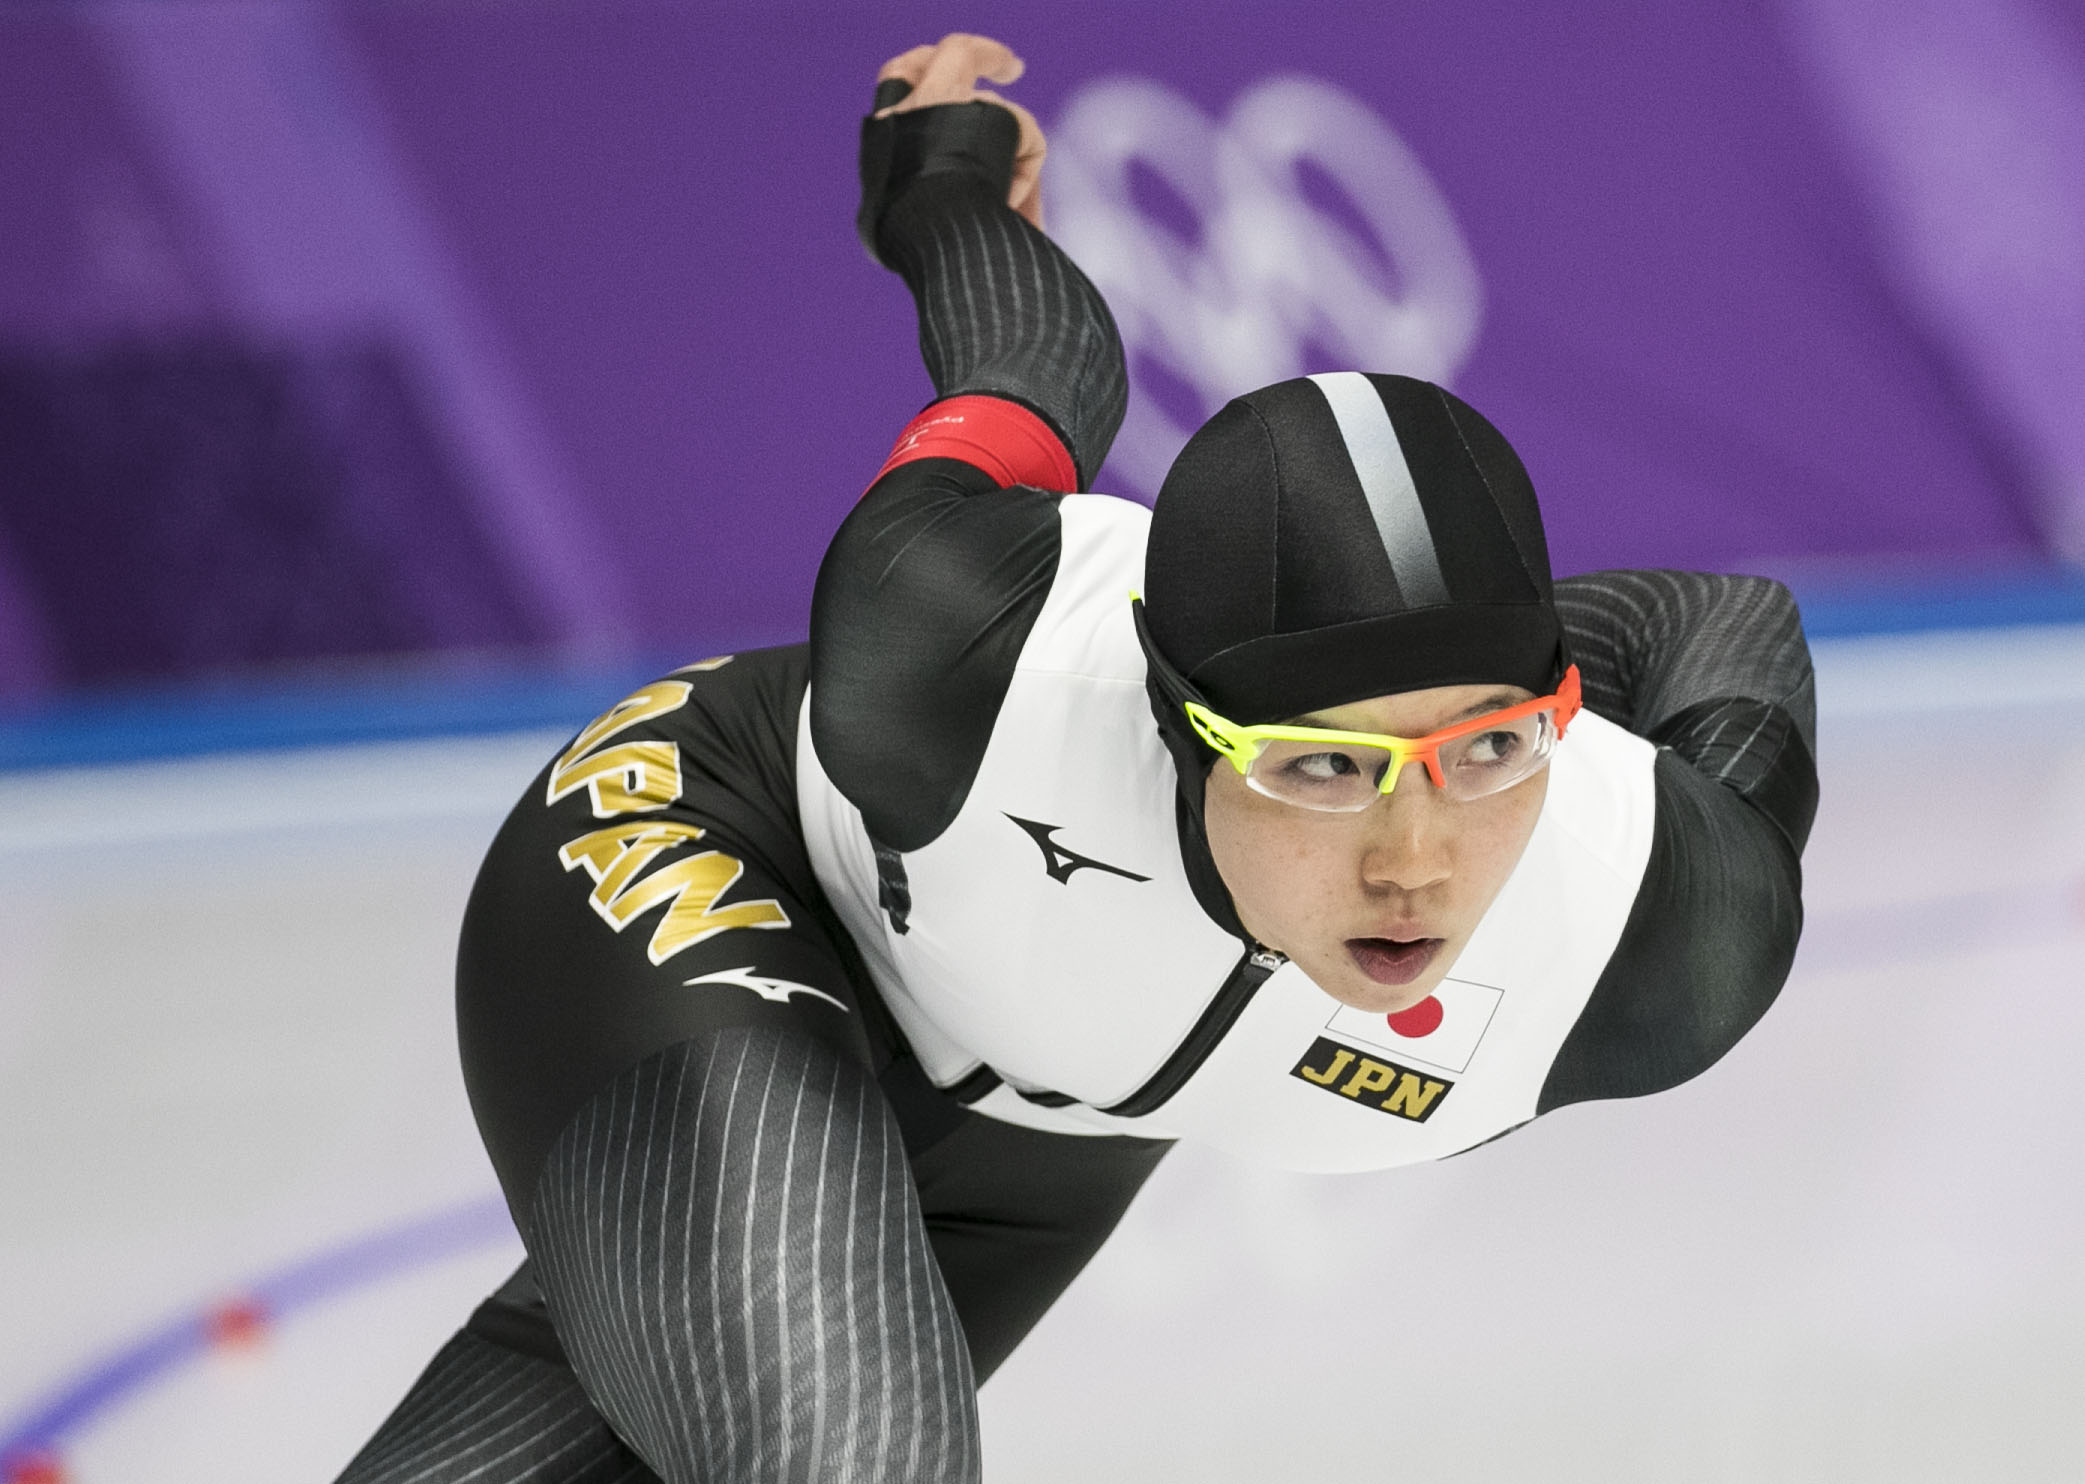 Ladies' USA long track speed skaters gathered at Gangneung Oval, Feb. 12, to compete for Olympic gold in the 1500 meters long track speed skate. From the Netherlands, Ireen Wust brings home the gold medal with a time of 1:54.35 making her the most decorated speed skaters in the world.